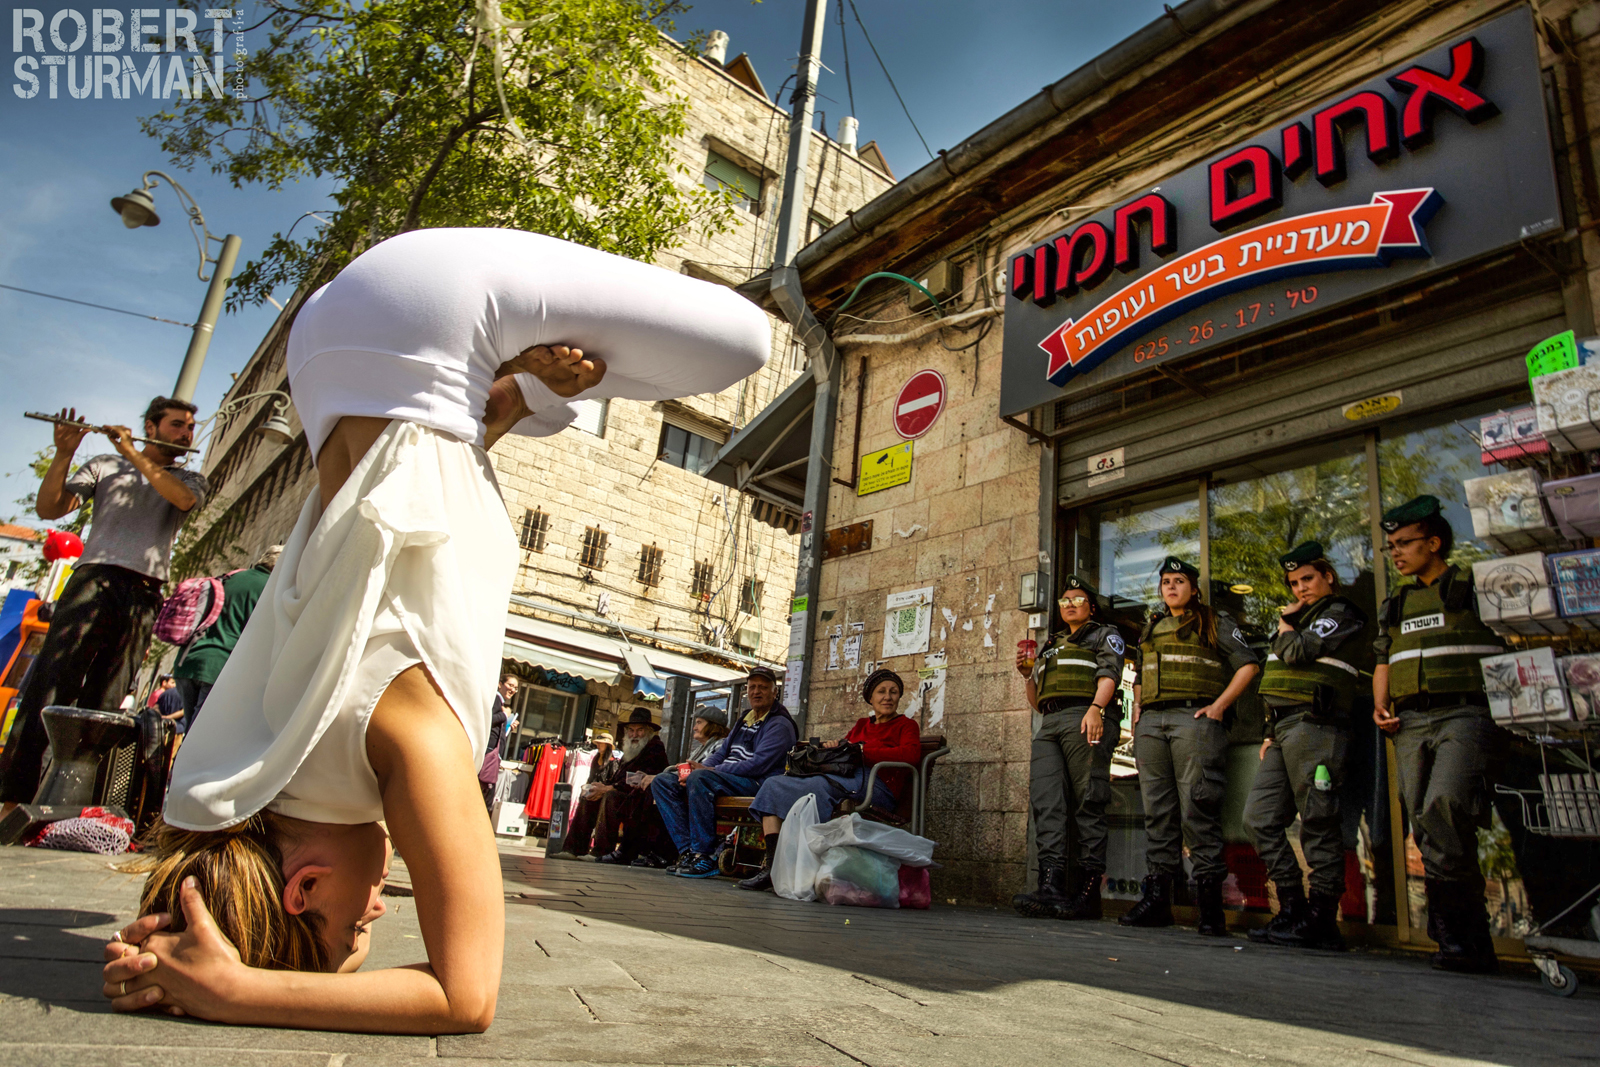 Talia Sutra in Jerusalem's Machane Yehuda market. Photo by Robert Sturman